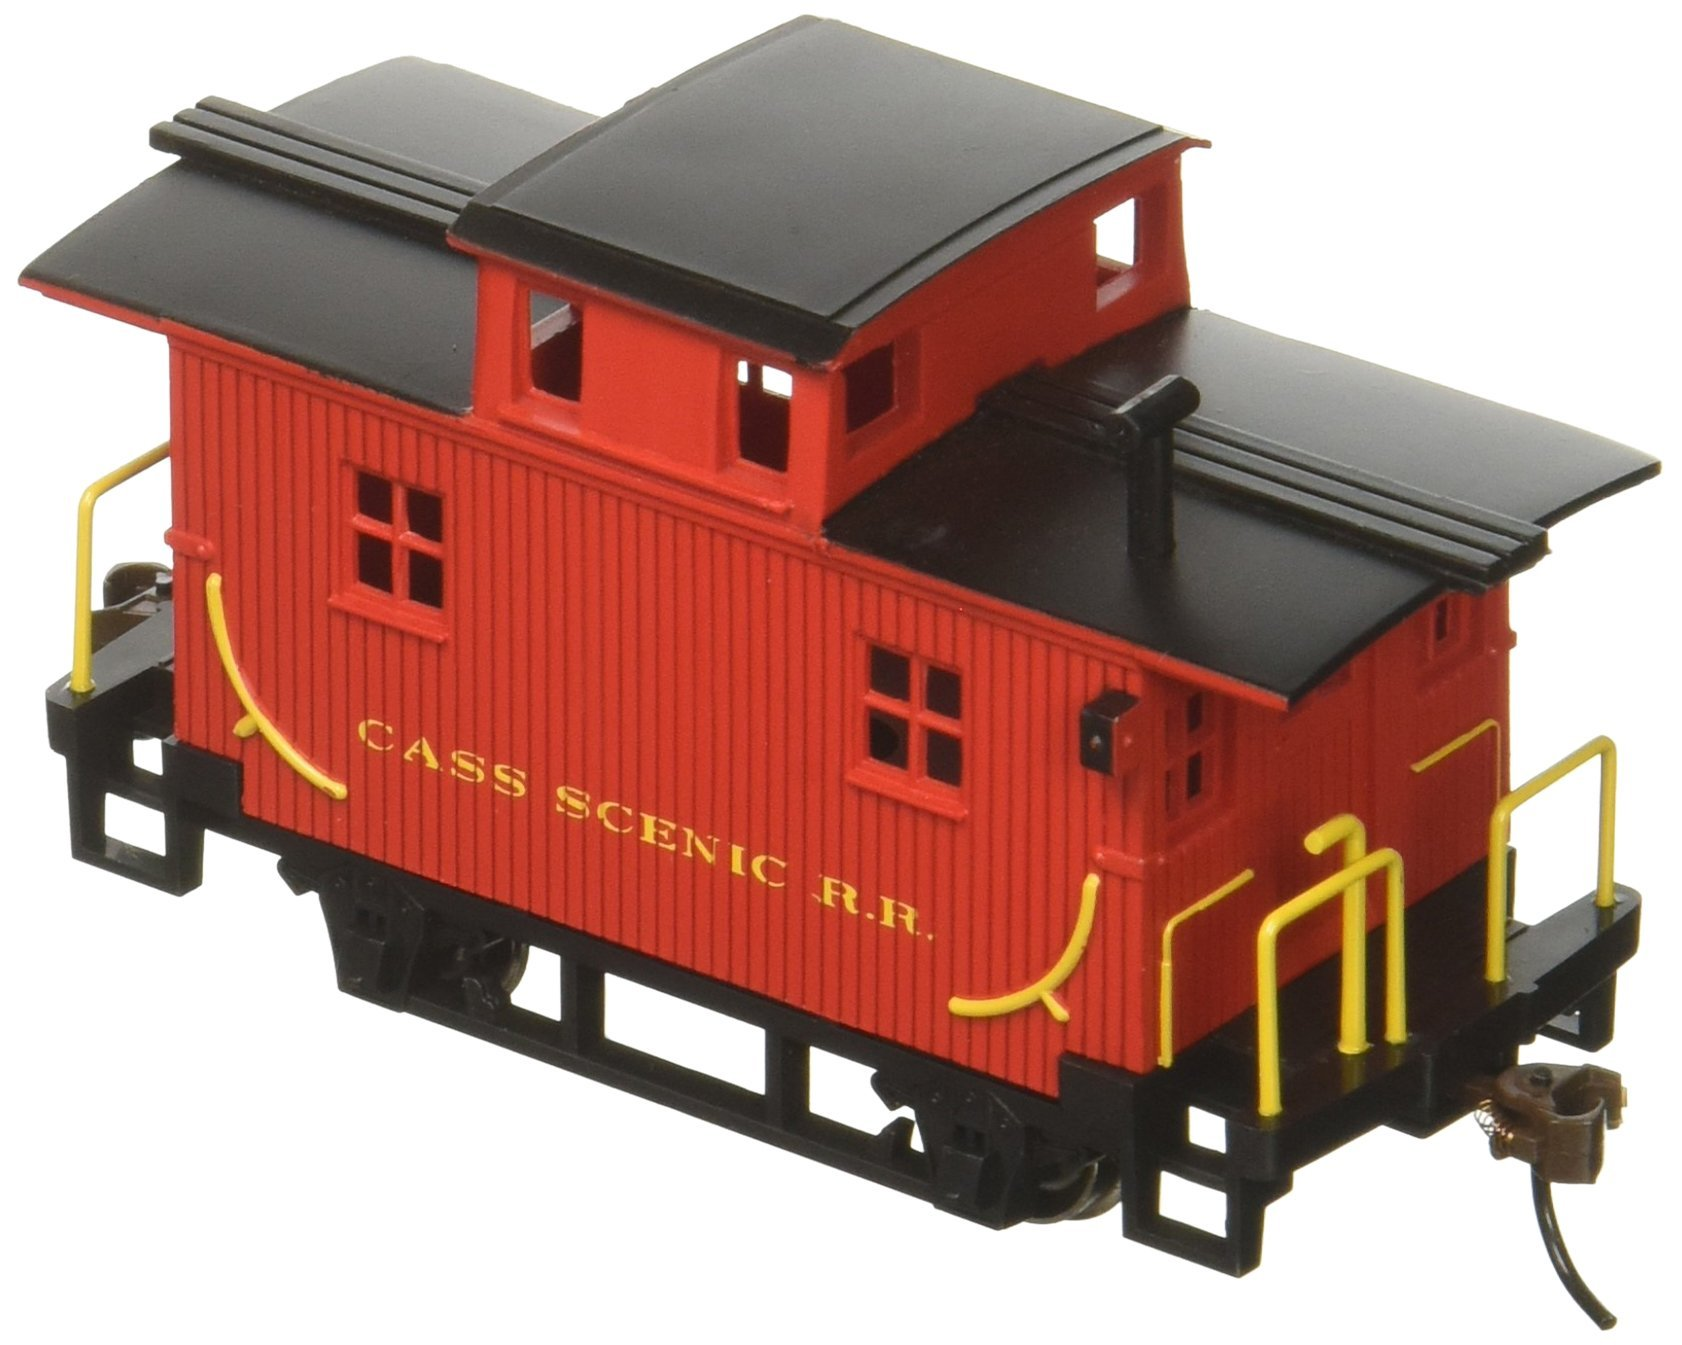 Bachmann Trains Cass Scenic R.R. Bobber Caboose-Ho Scale